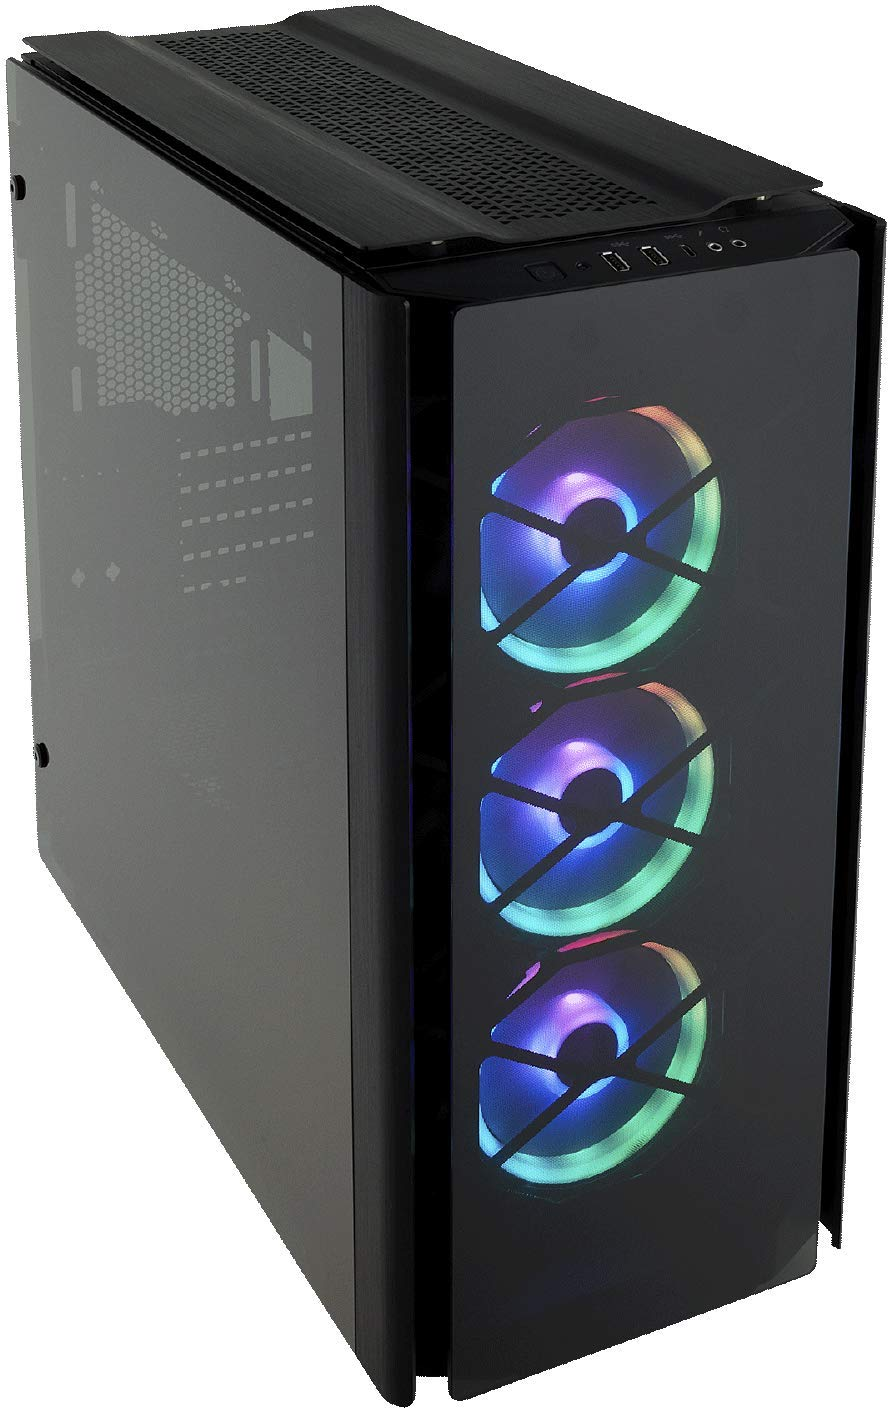 CORSAIR Obsidian 500D RGB SE Mid-Tower Case, 3 RGB Fans, Smoked Tempered Glass, Aluminum Trim - Integrated Commander PRO Fan and Lighting Controller by Corsair